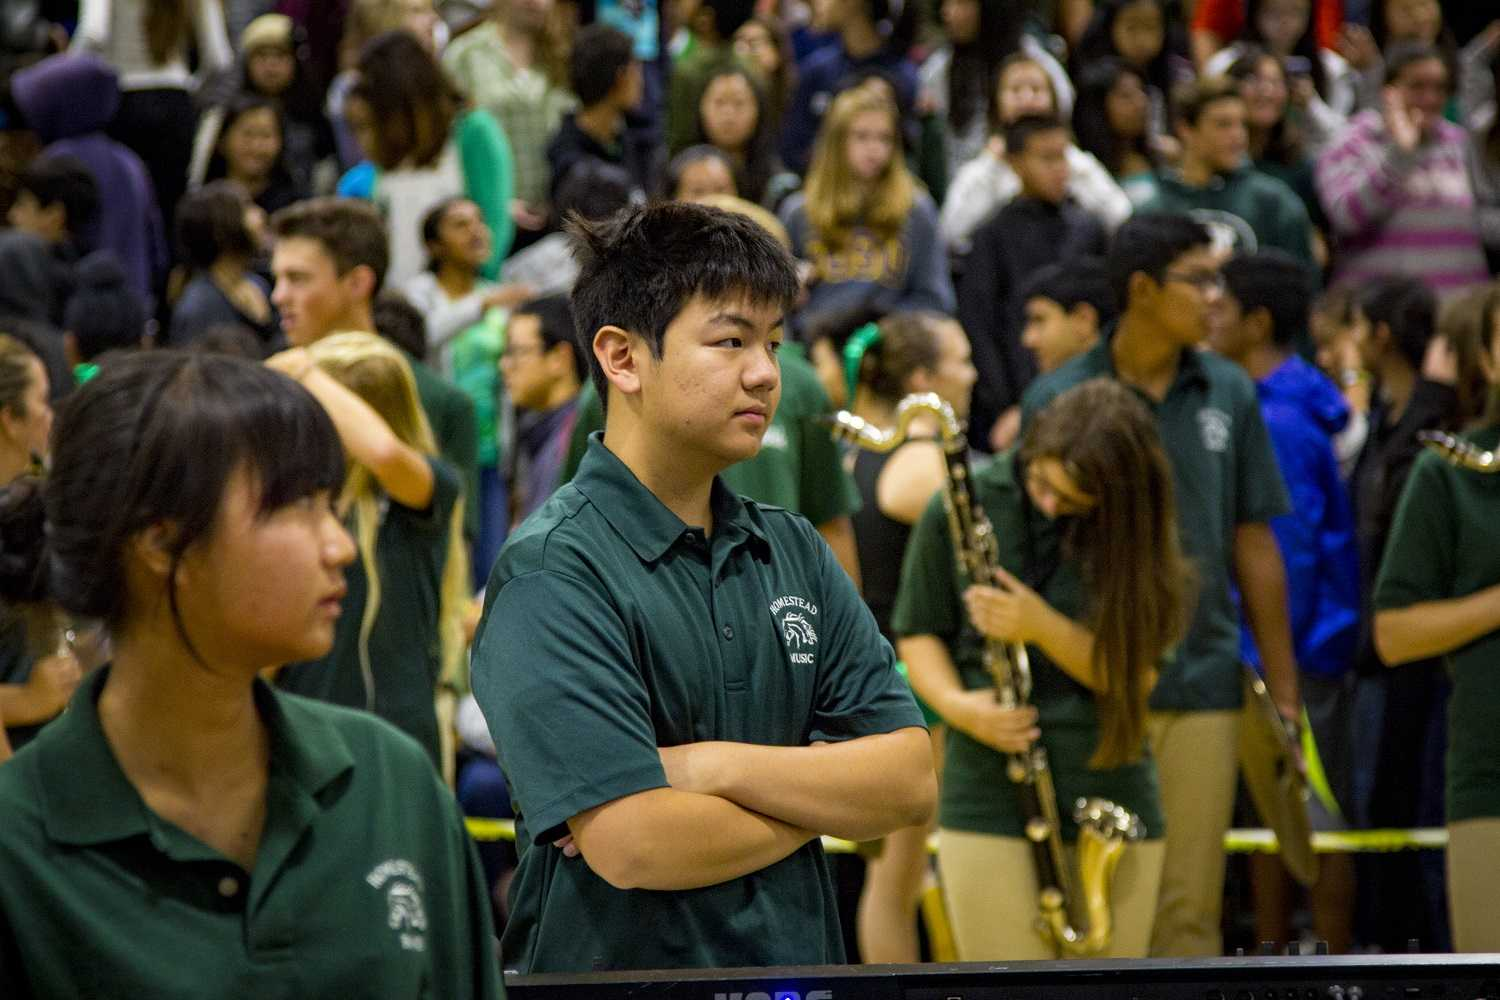 Sophomore+Sean+Chen+prepares+to+play+with+the+marching+band+in+the+first+number+of+the+rally.